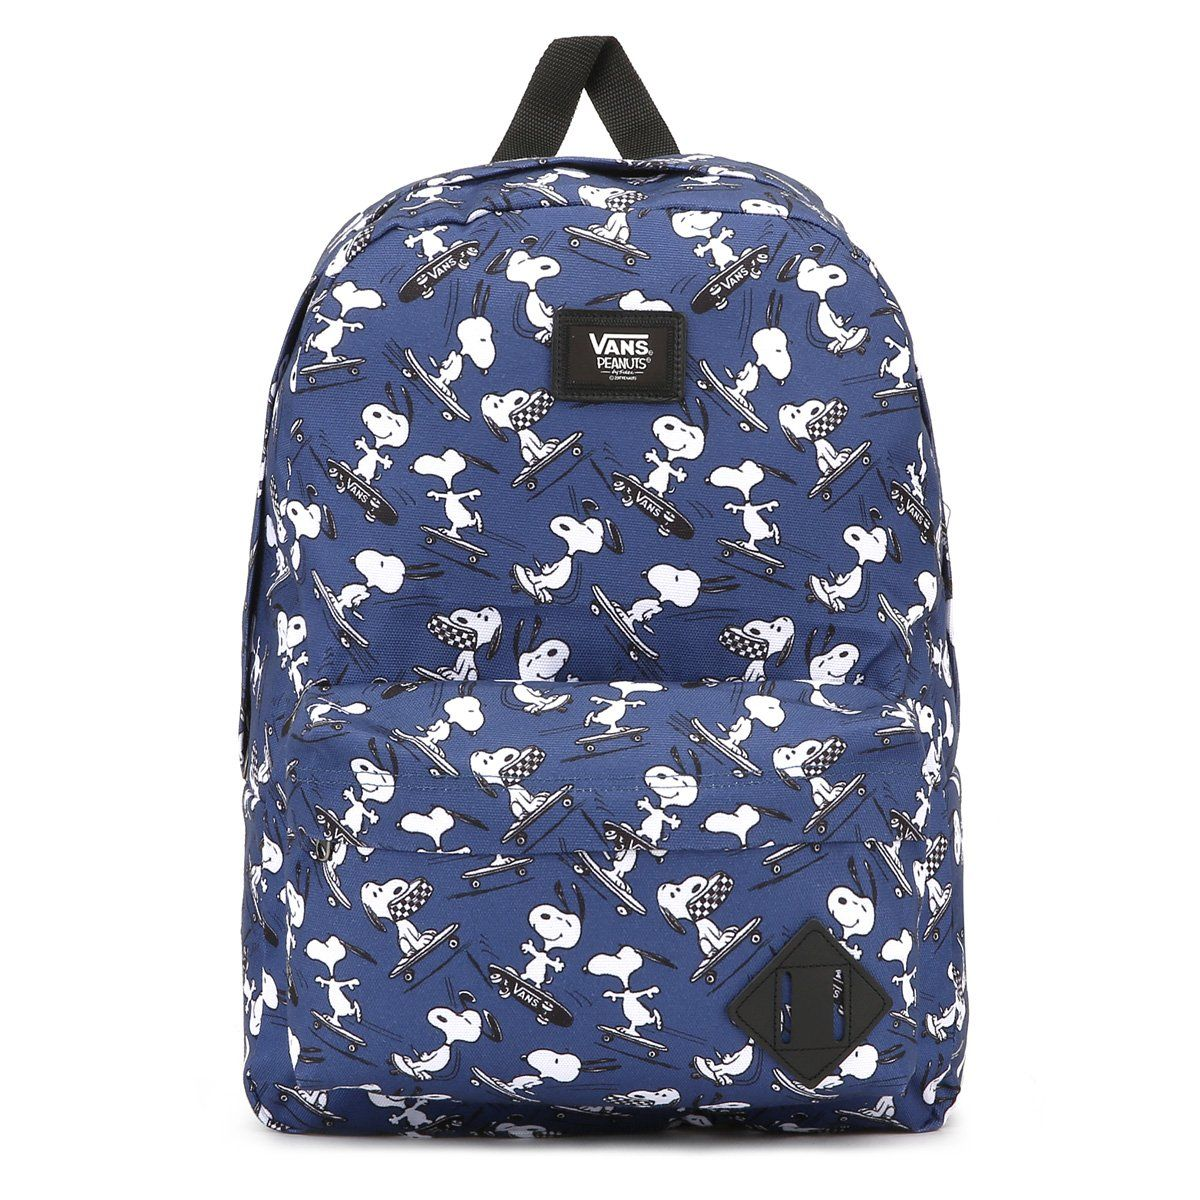 42f57a3115 Vans Peanuts True Navy Old Skool ll Backpack